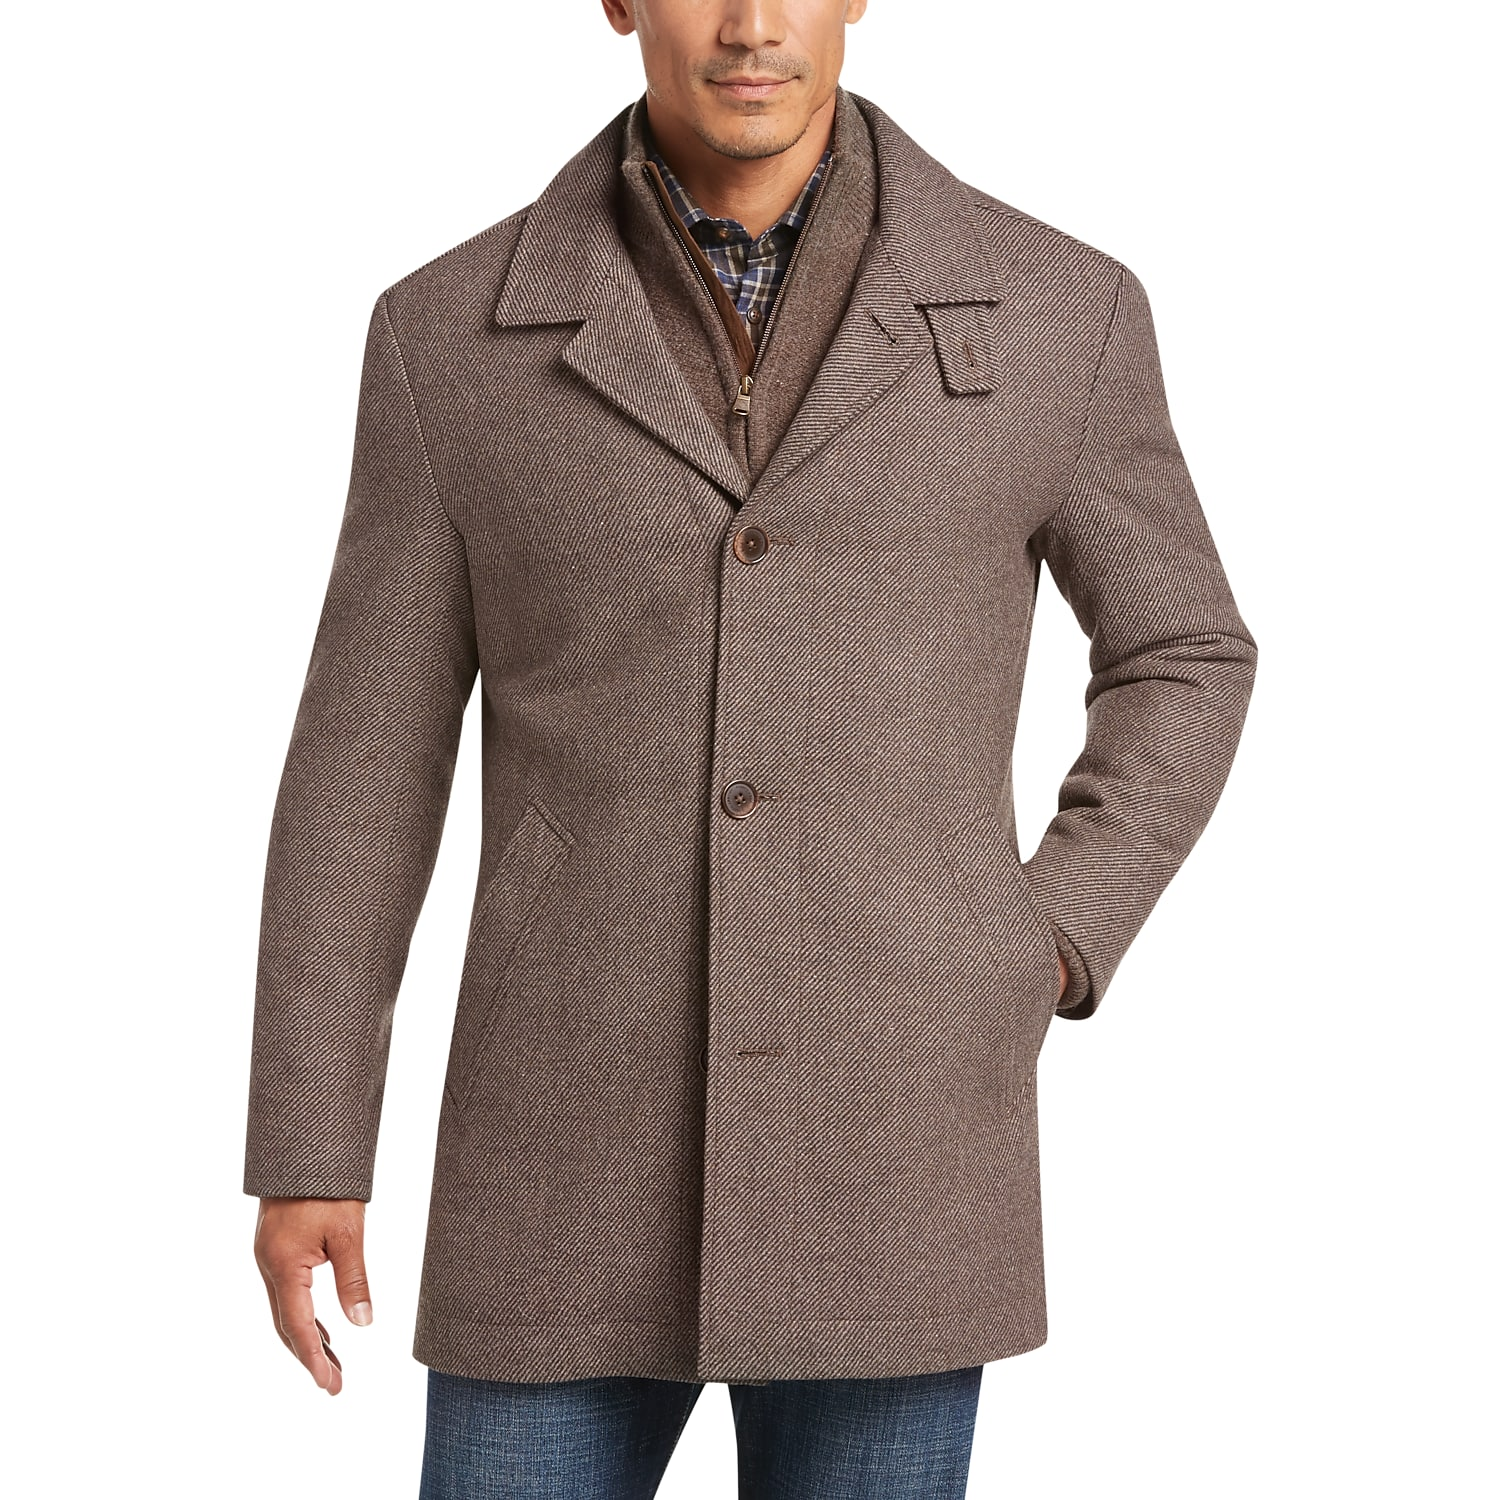 efcb2b22e5f1 Jackets, Outerwear & Coats for Men | Men's Wearhouse